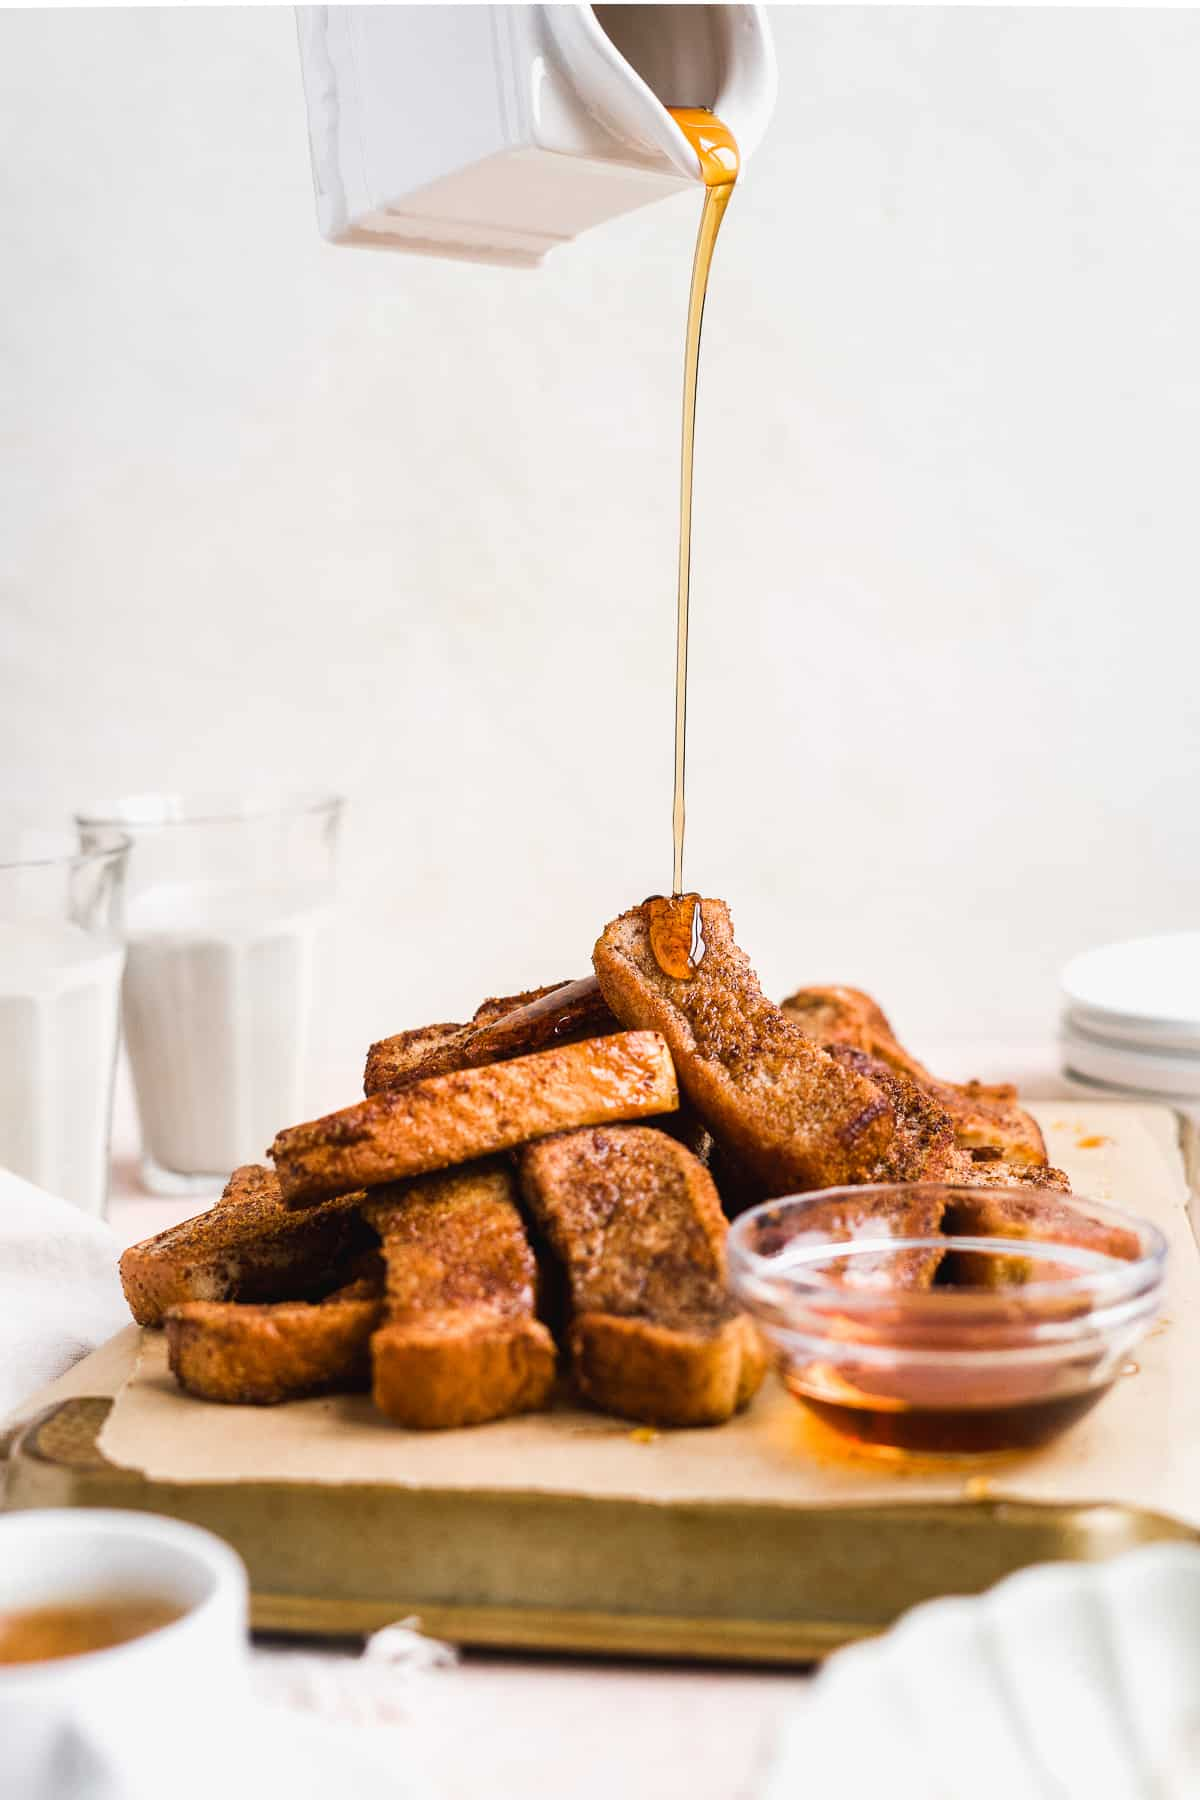 Maple syrup being poured on top of a pile of french toast sticks.